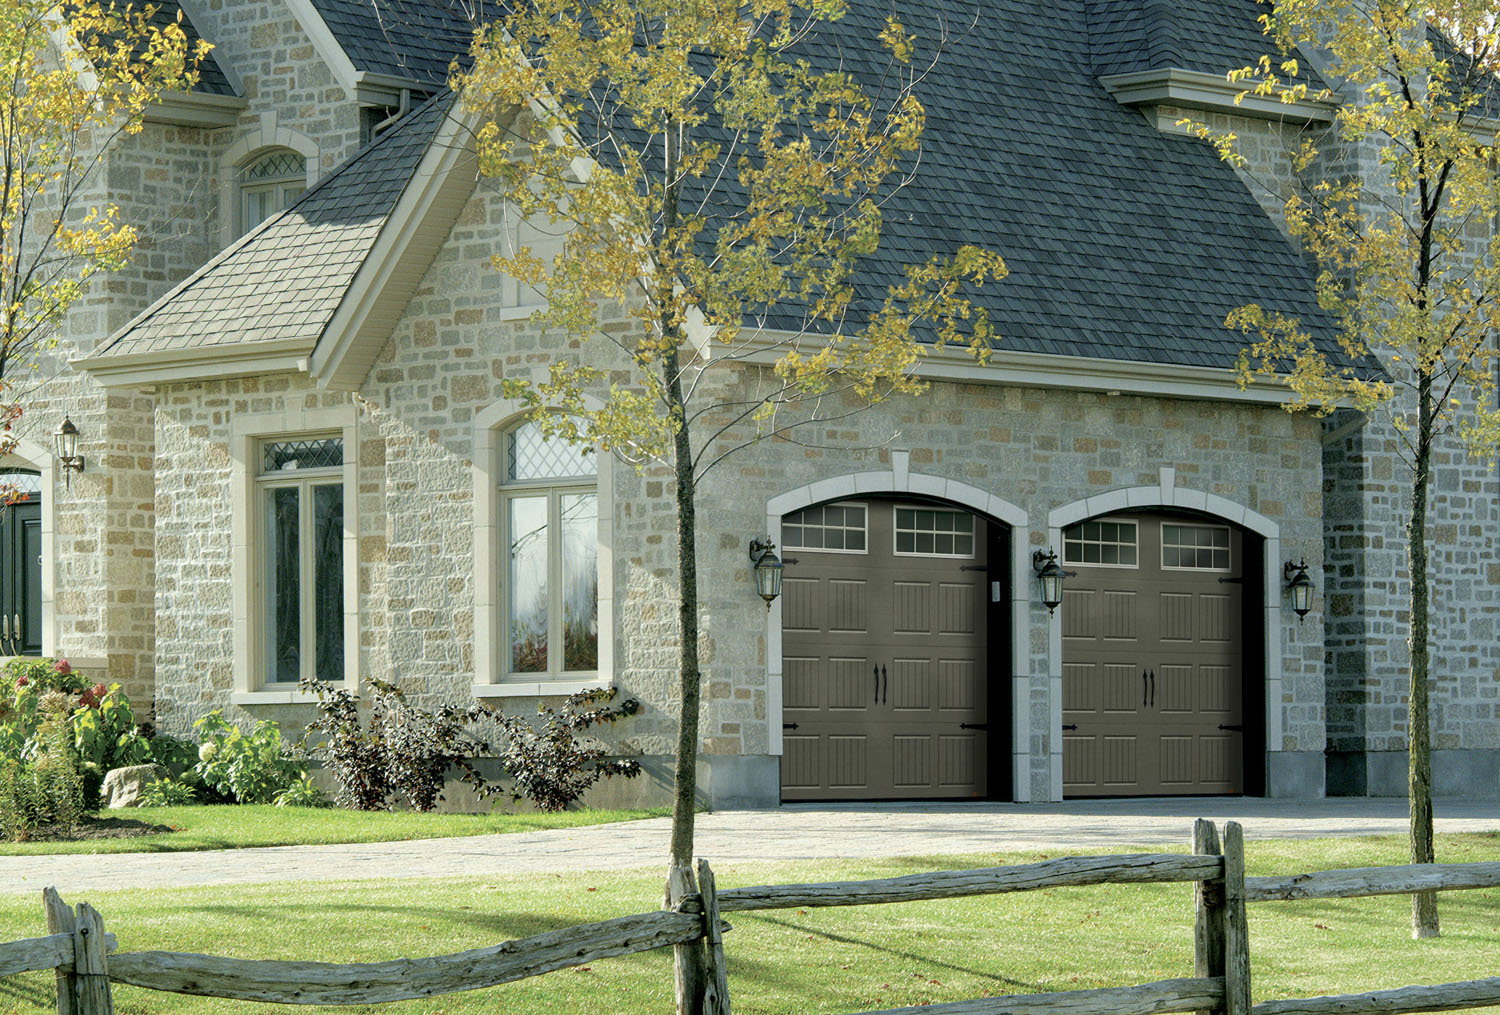 Energy savings with an insulated garage door